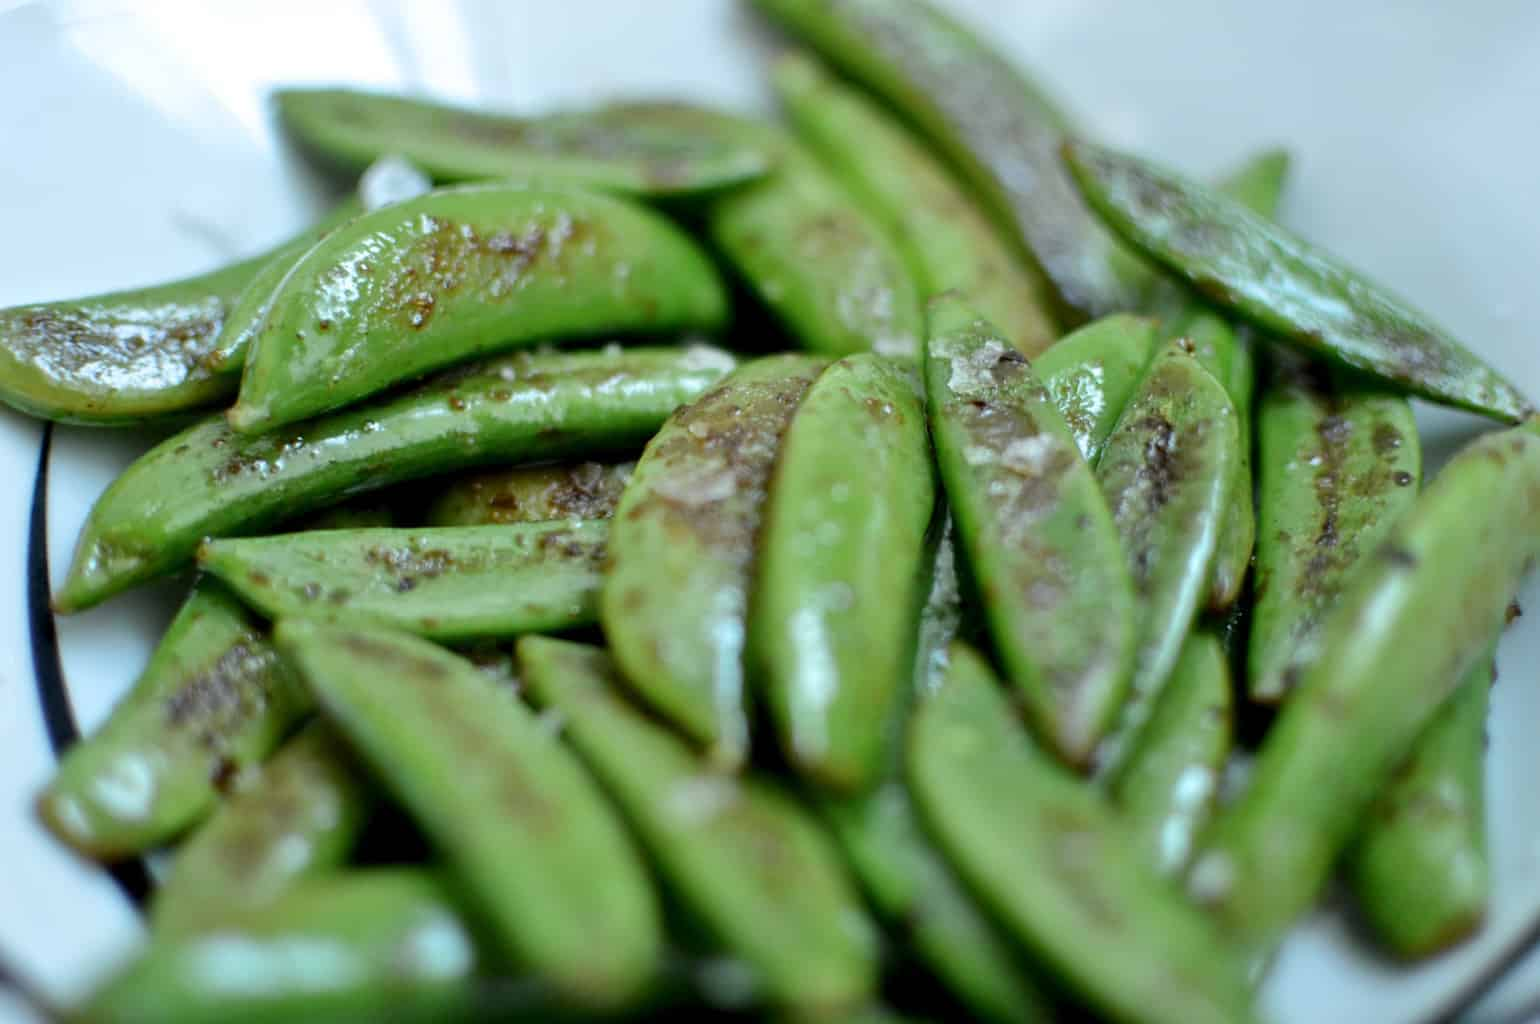 Sugarsnap peas with cayenne pepper & lemon